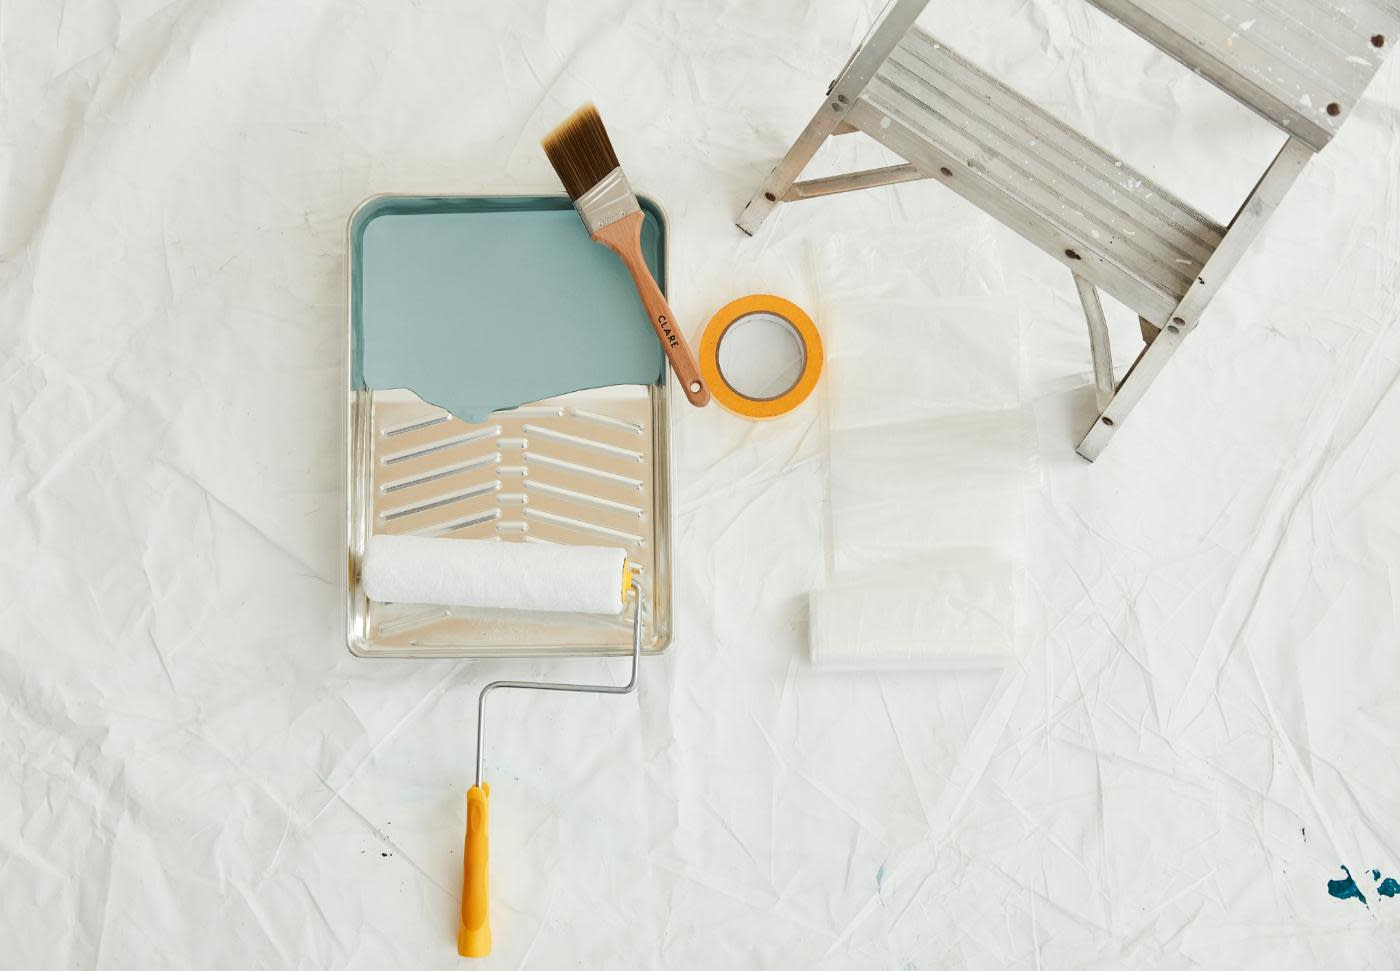 The EPA says that the air inside your home can be up to 10 times more polluted than the air outside. Read Clare's Tips for keeping the air in your home healthy.